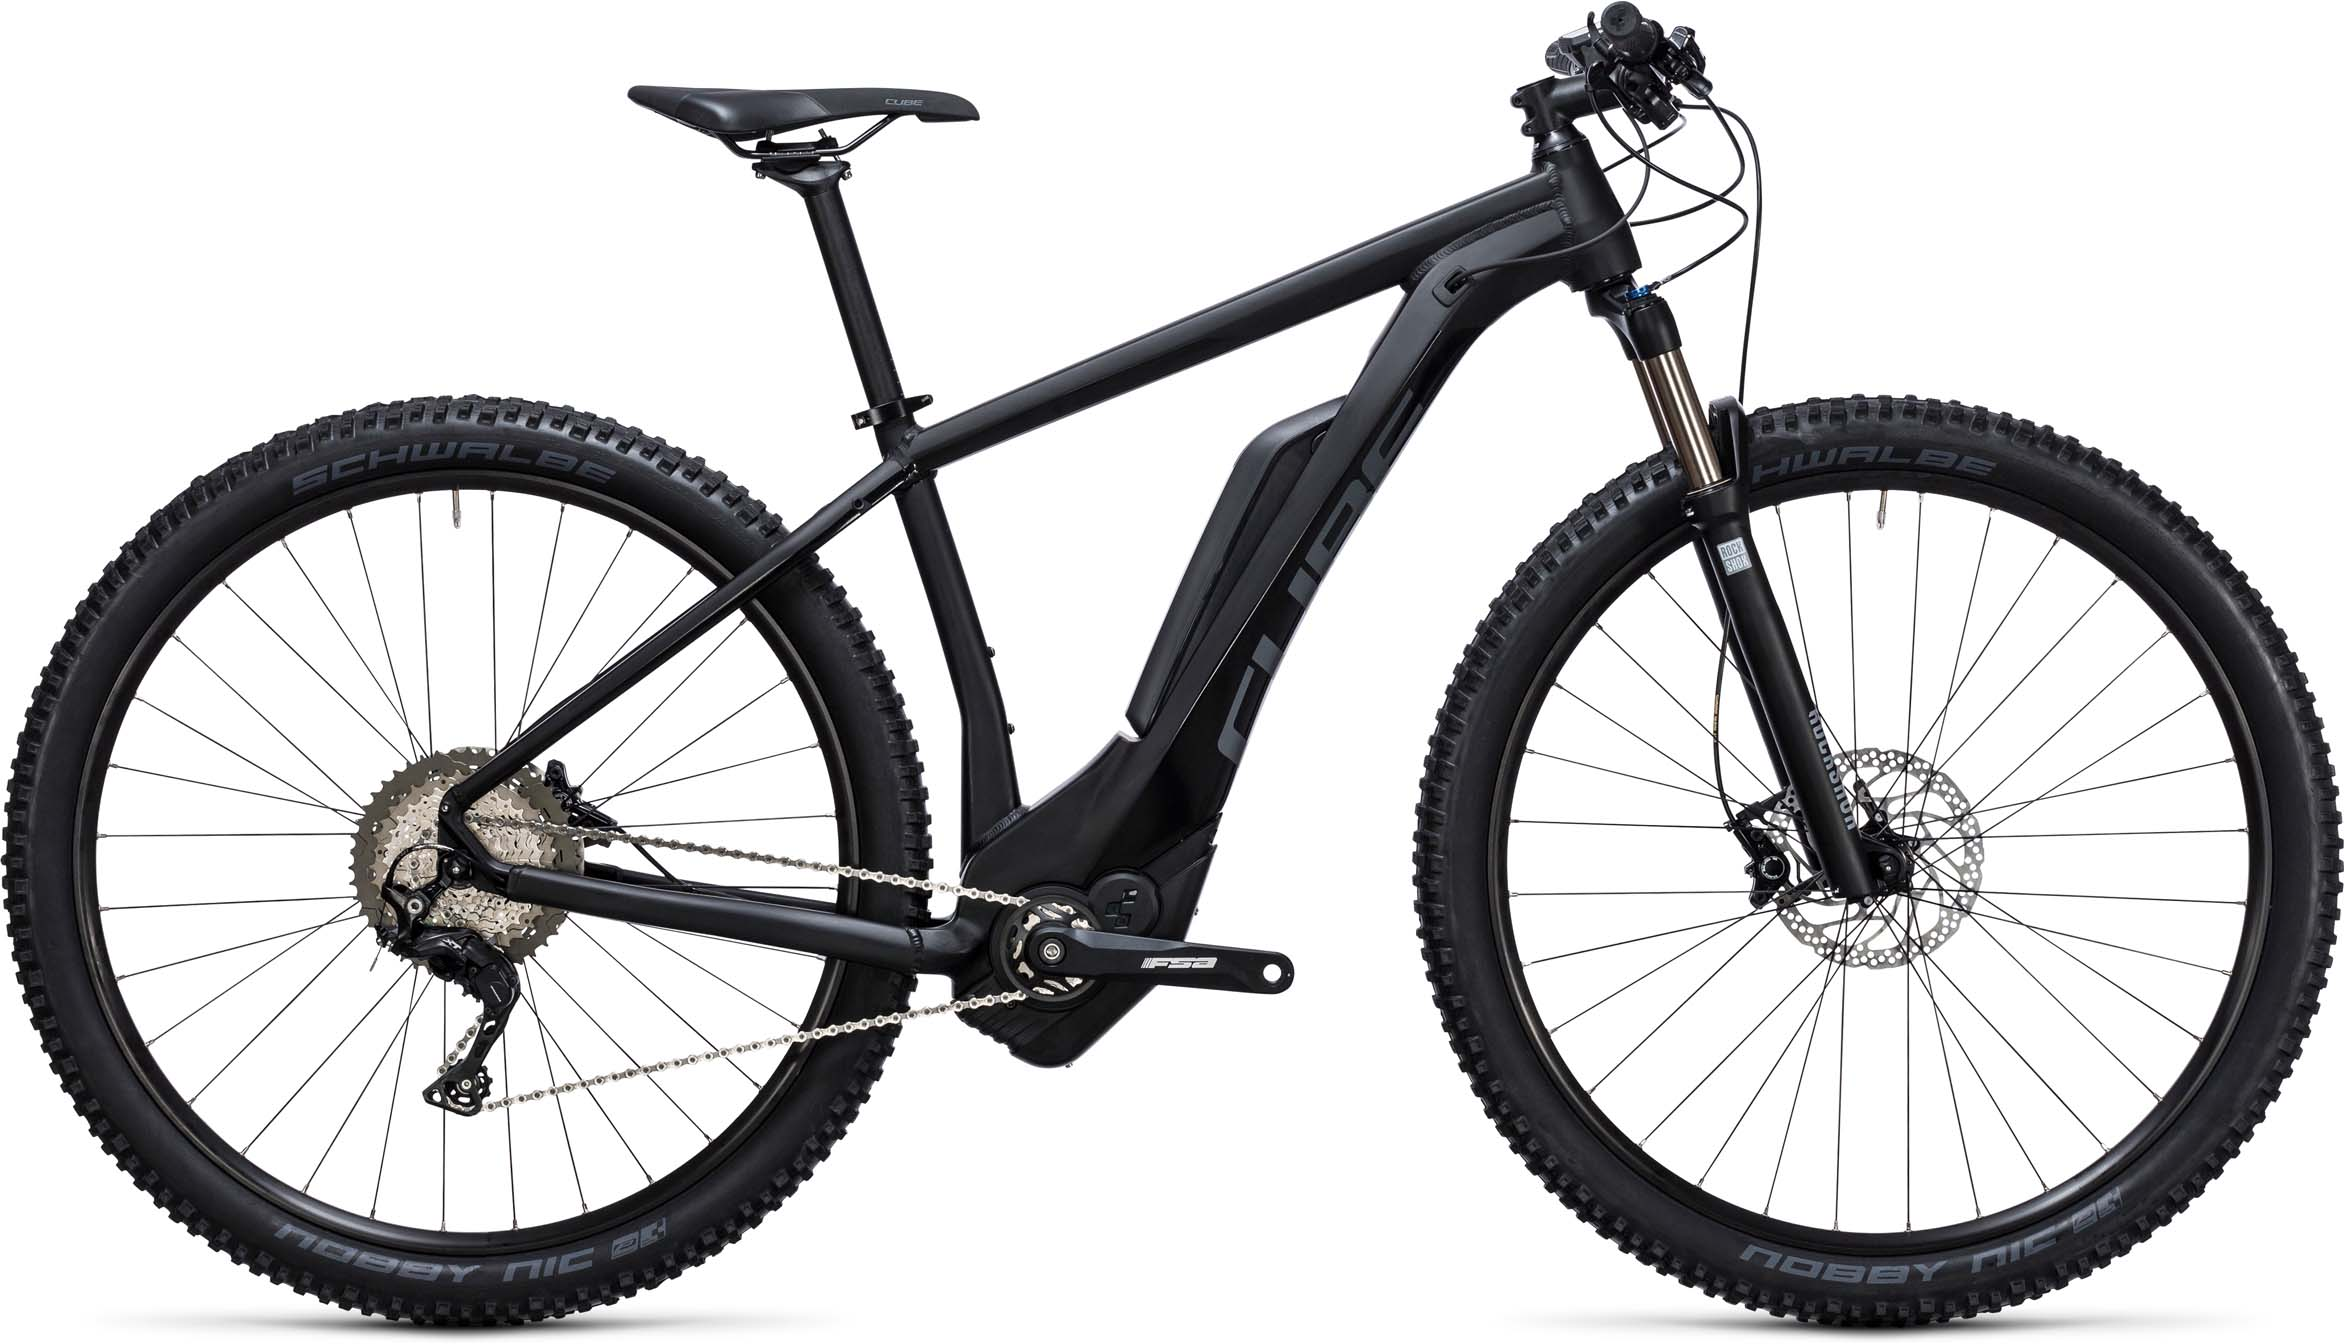 e bike mtb hardtail 29 zoll mountainbikes hardtail e. Black Bedroom Furniture Sets. Home Design Ideas